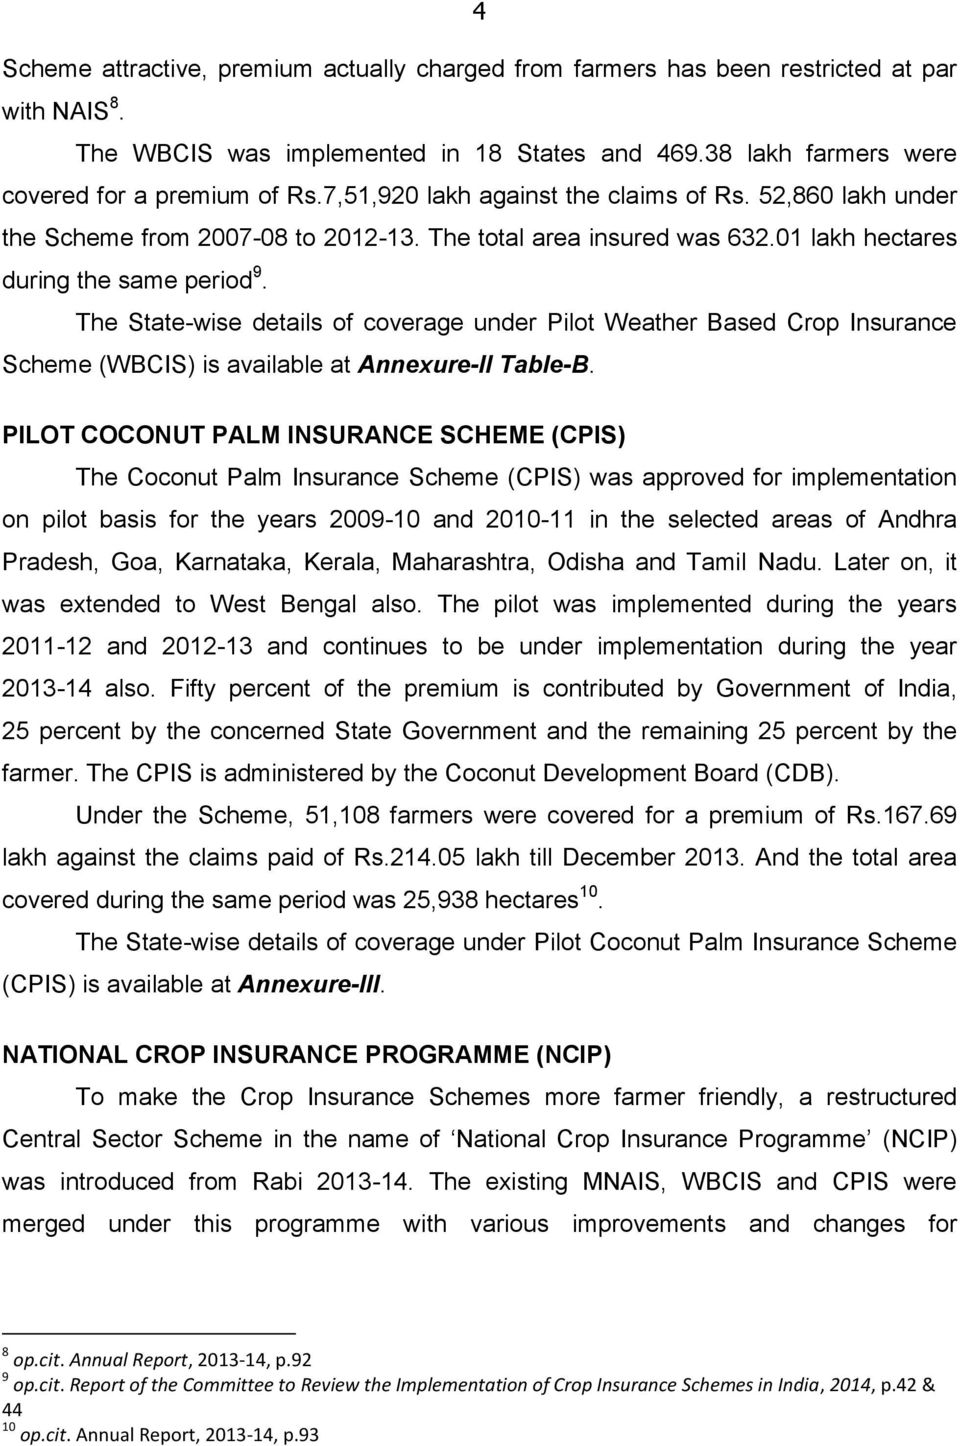 The State-wise details of coverage under Pilot Weather Based Crop Insurance Scheme (WBCIS) is available at Annexure-II Table-B.